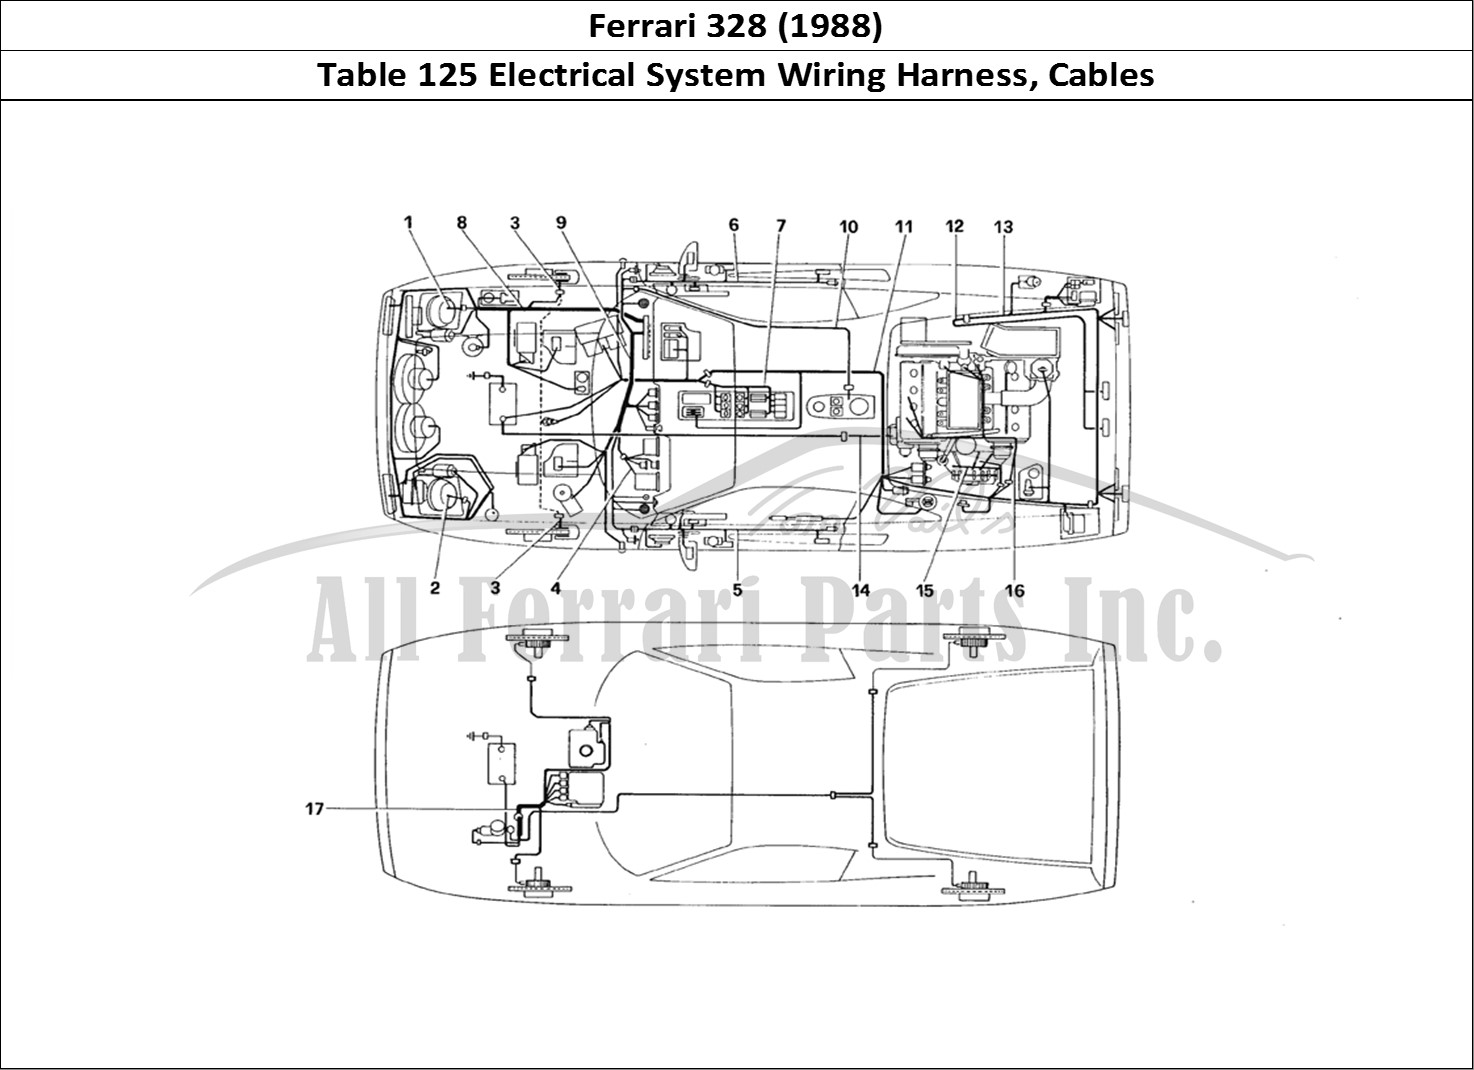 Buy Original Ferrari 328 125 Electrical System